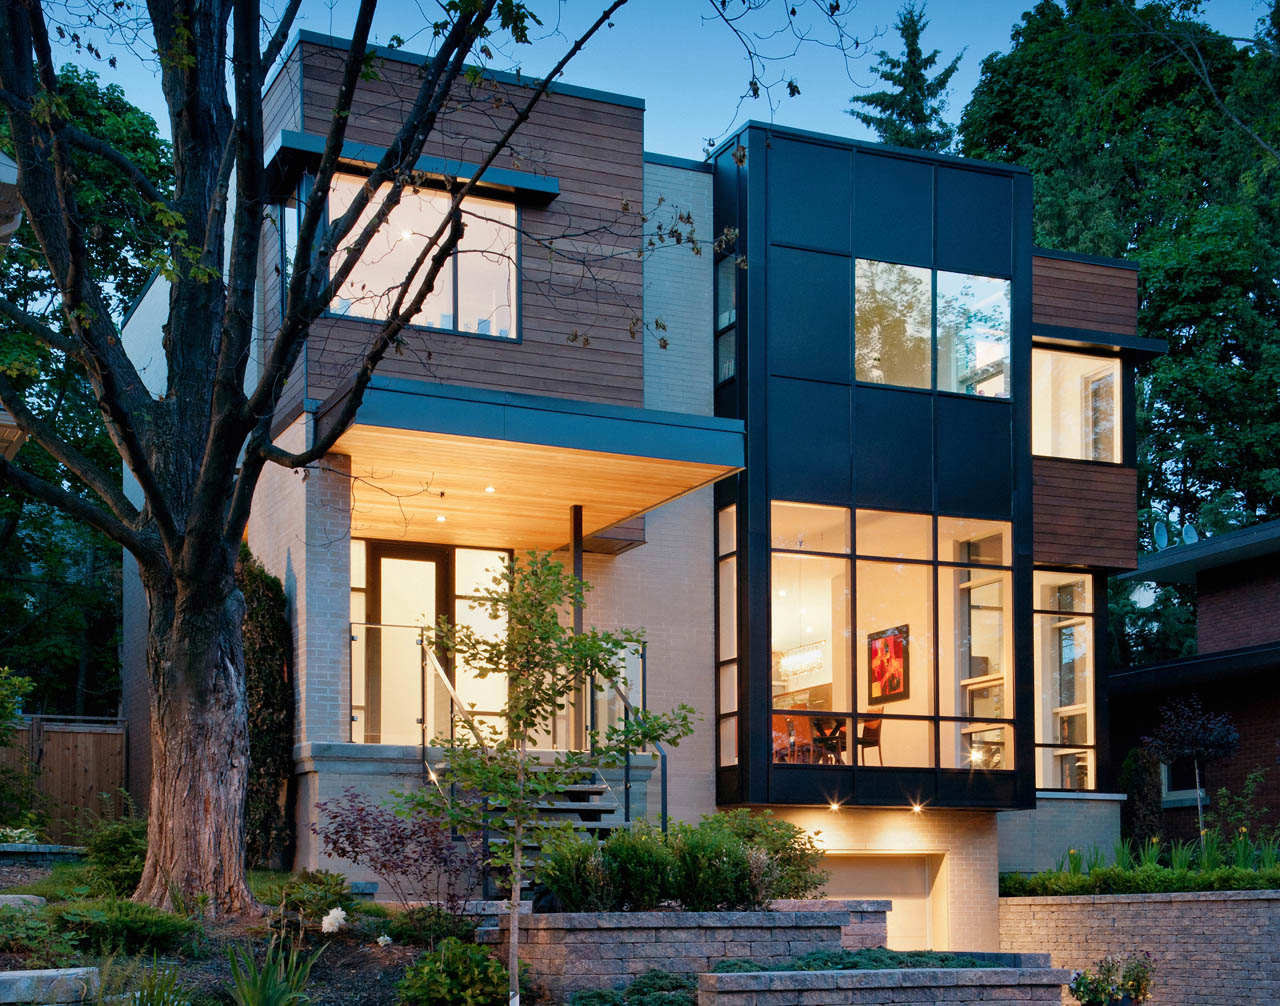 Fraser Residence / Christopher Simmonds Architect, Courtesy of  christopher simmonds architect